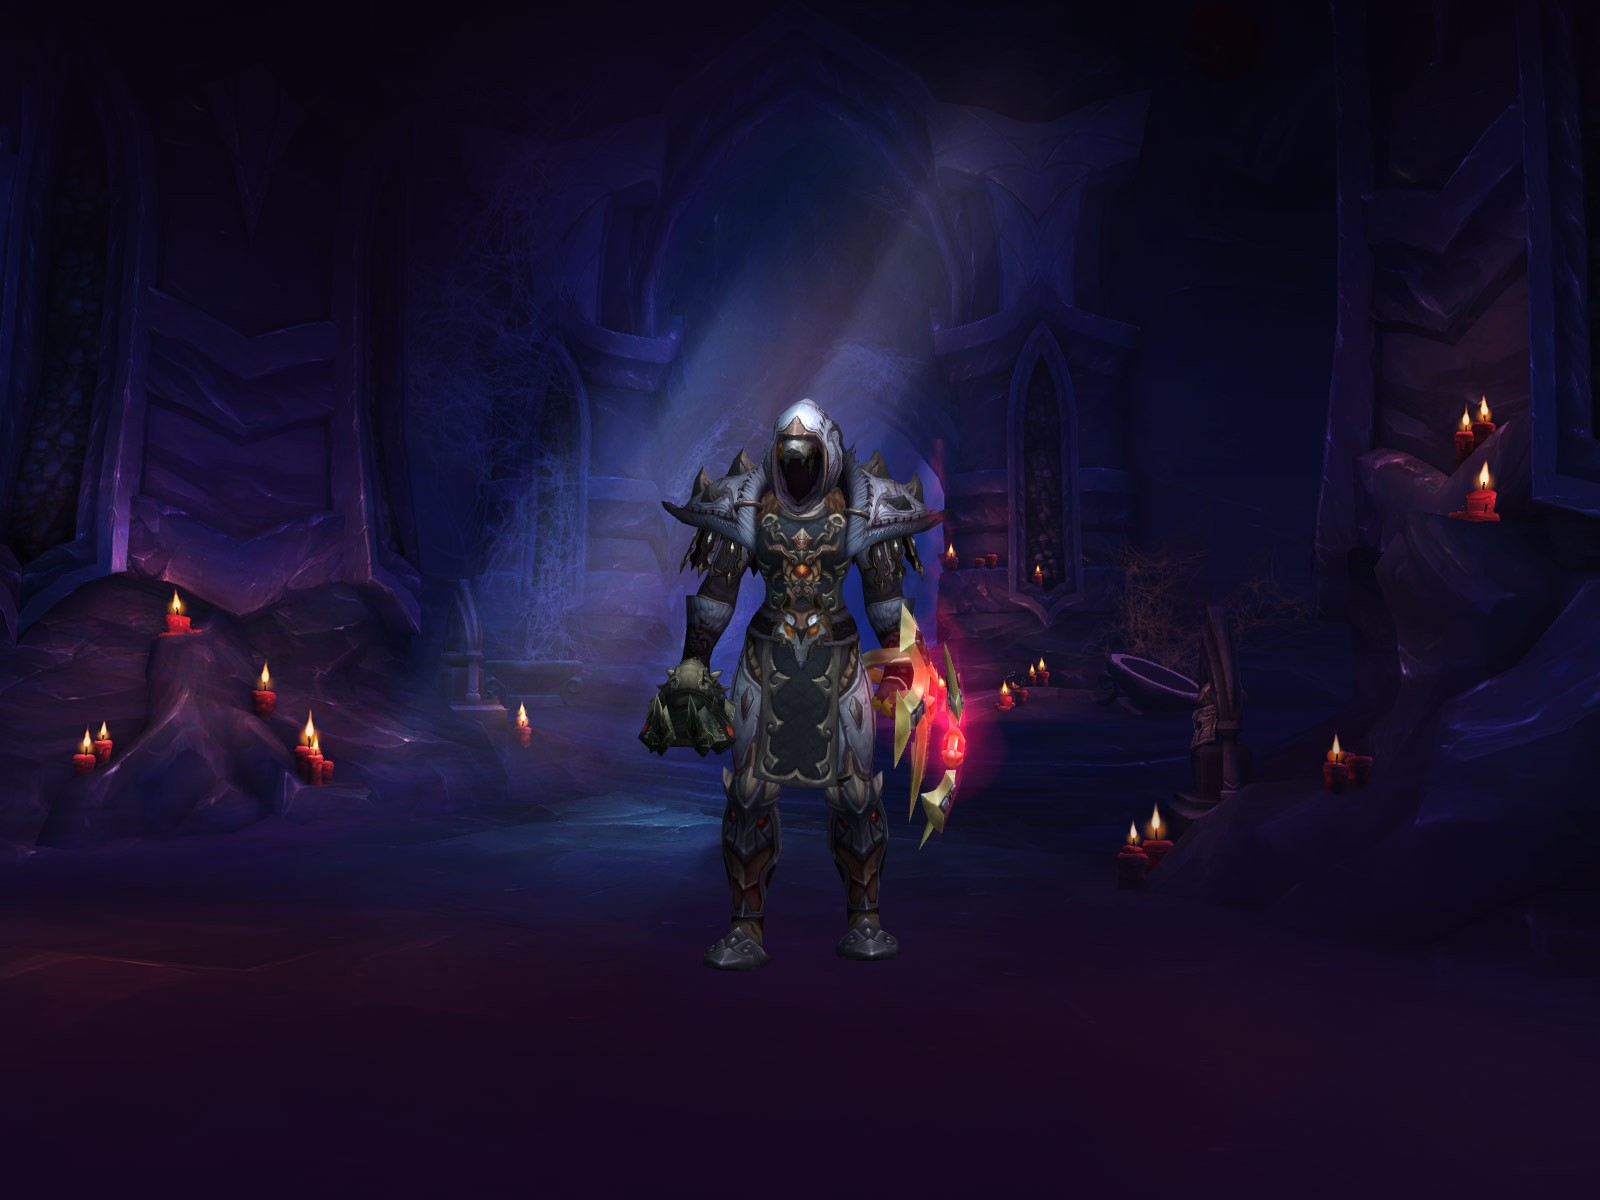 Wanting to learn to be a PvPer   (class suggestions